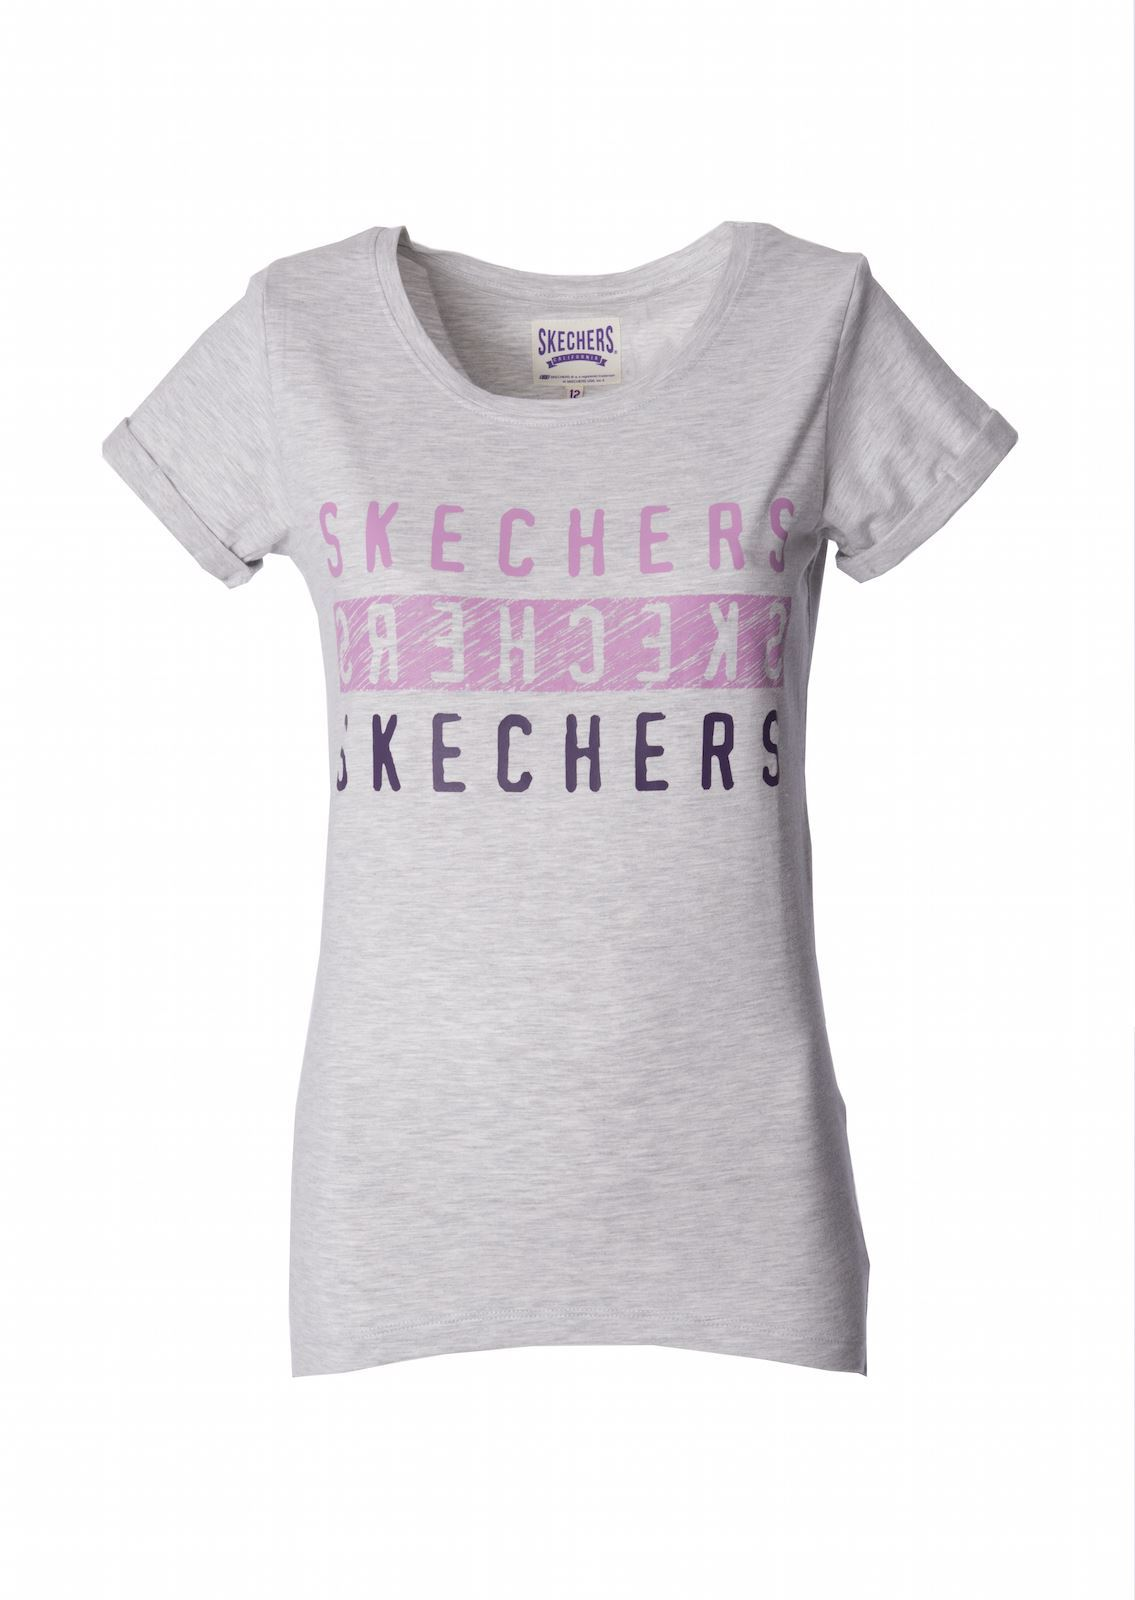 a5492367483 Buy skechers t shirt womens white > OFF79% Discounted